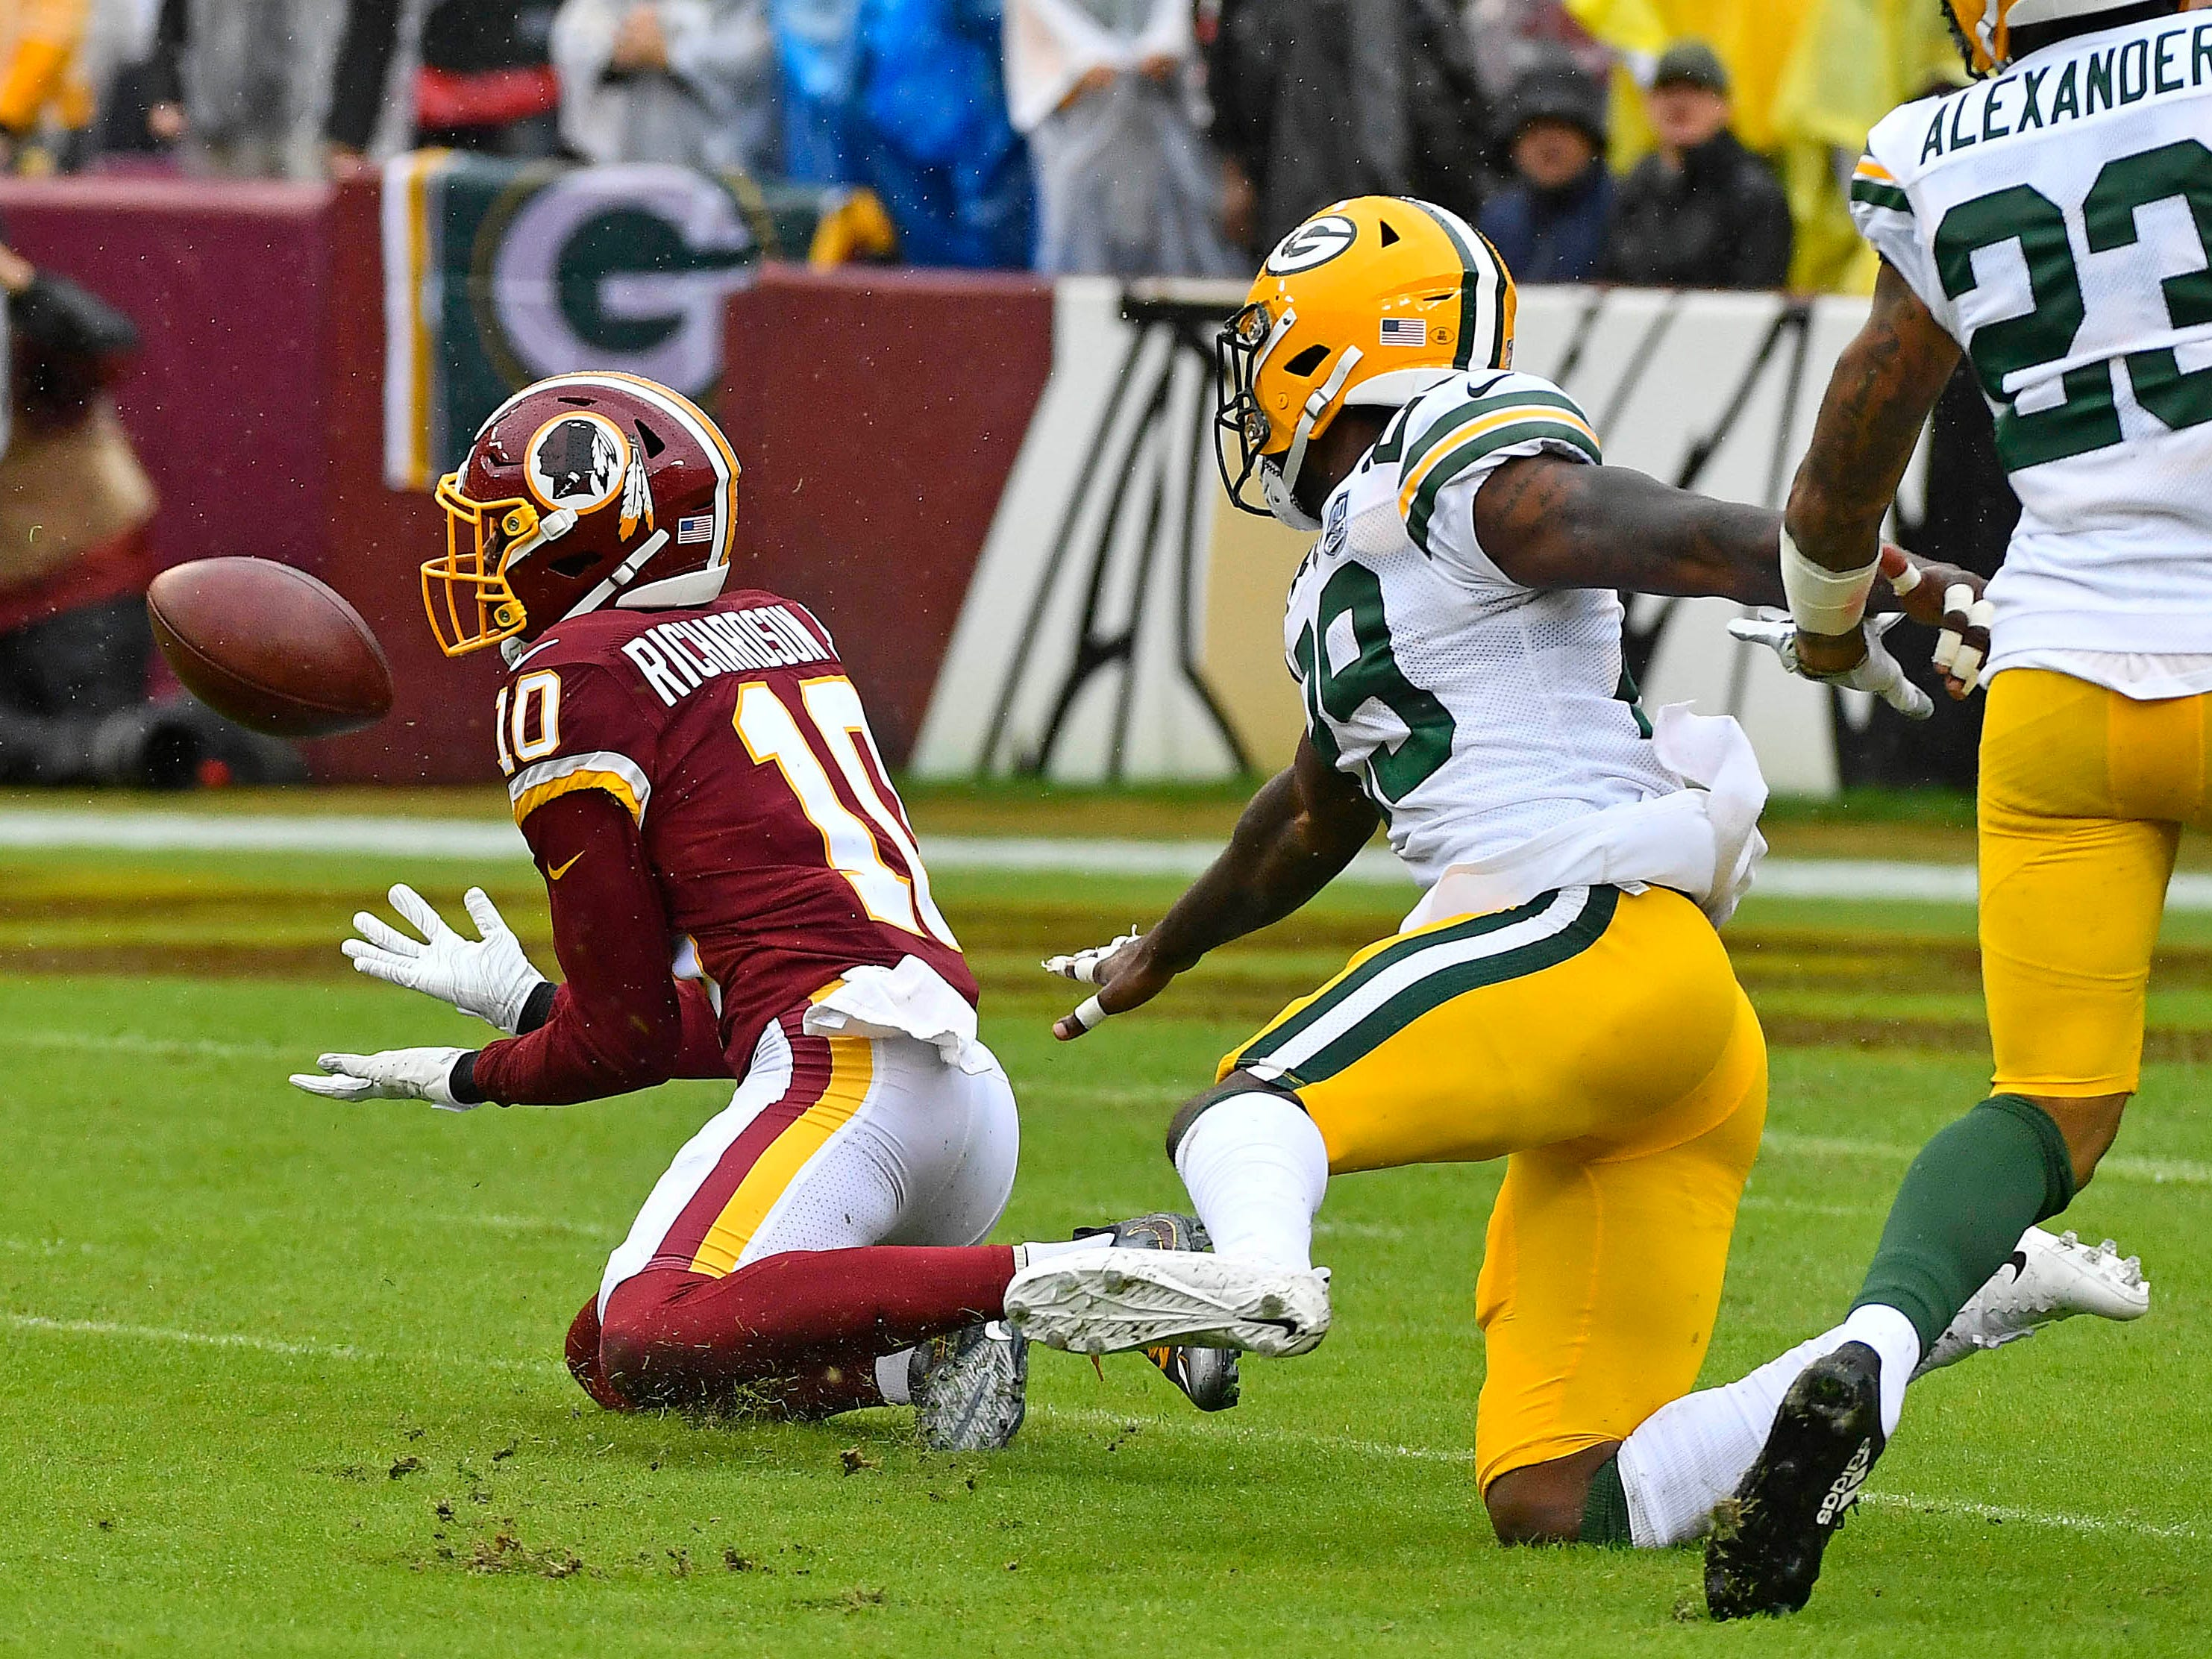 Washington Redskins wide receiver Paul Richardson catches a pass as Green Bay Packers defensive back Kentrell Brice defends during the first quarter at FedEx Field.